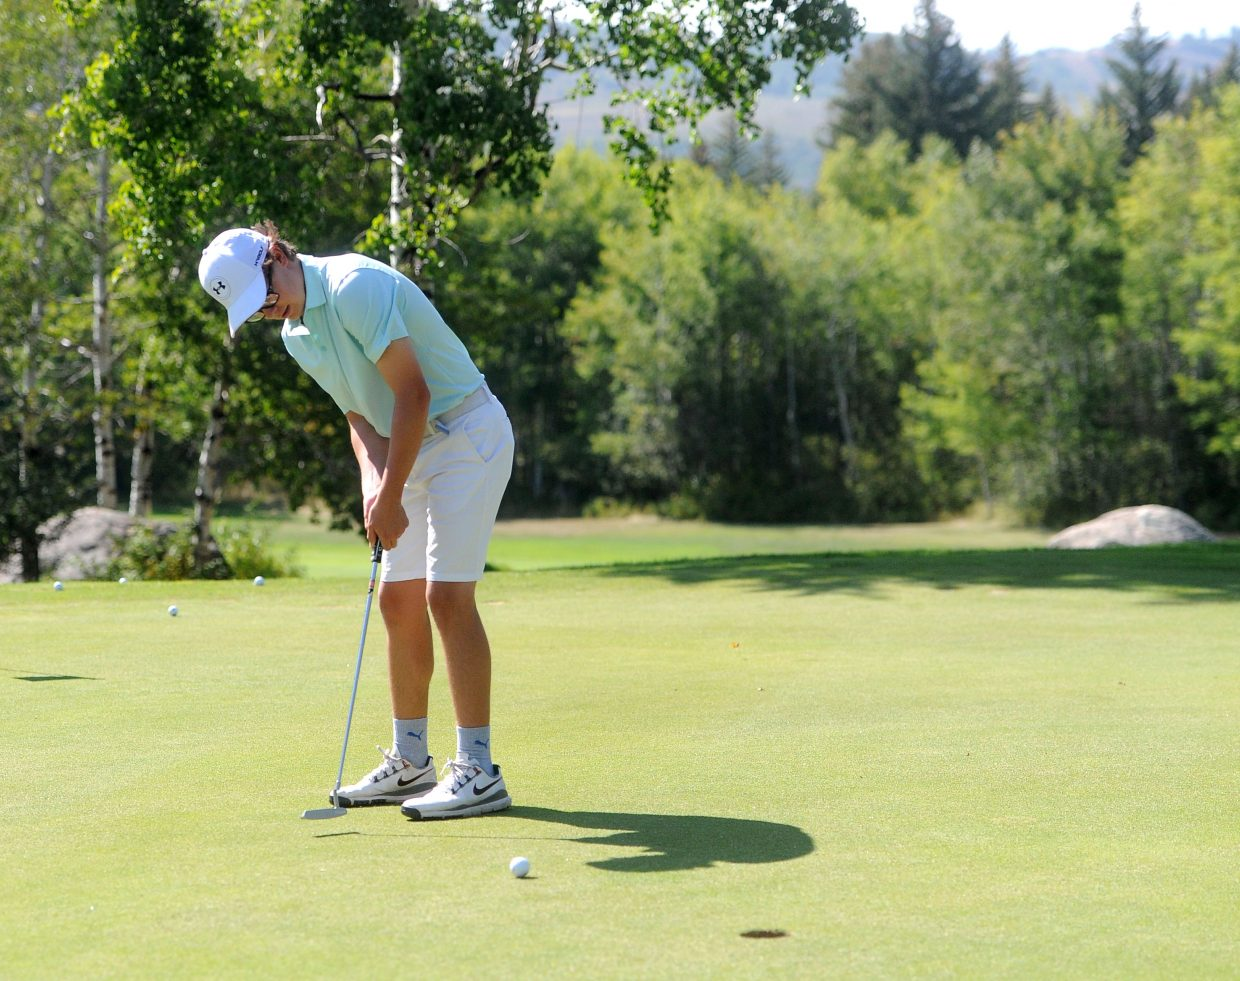 Steamboat Springs High School junior Tommy Henninger lines up a putt at practice at Rollingstone Ranch Golf Course on Aug. 29. Henninger has found recent success, placing second individually at the Rifle Bears Invitational on Aug. 28 in Rifle, which helped the team win first overall.